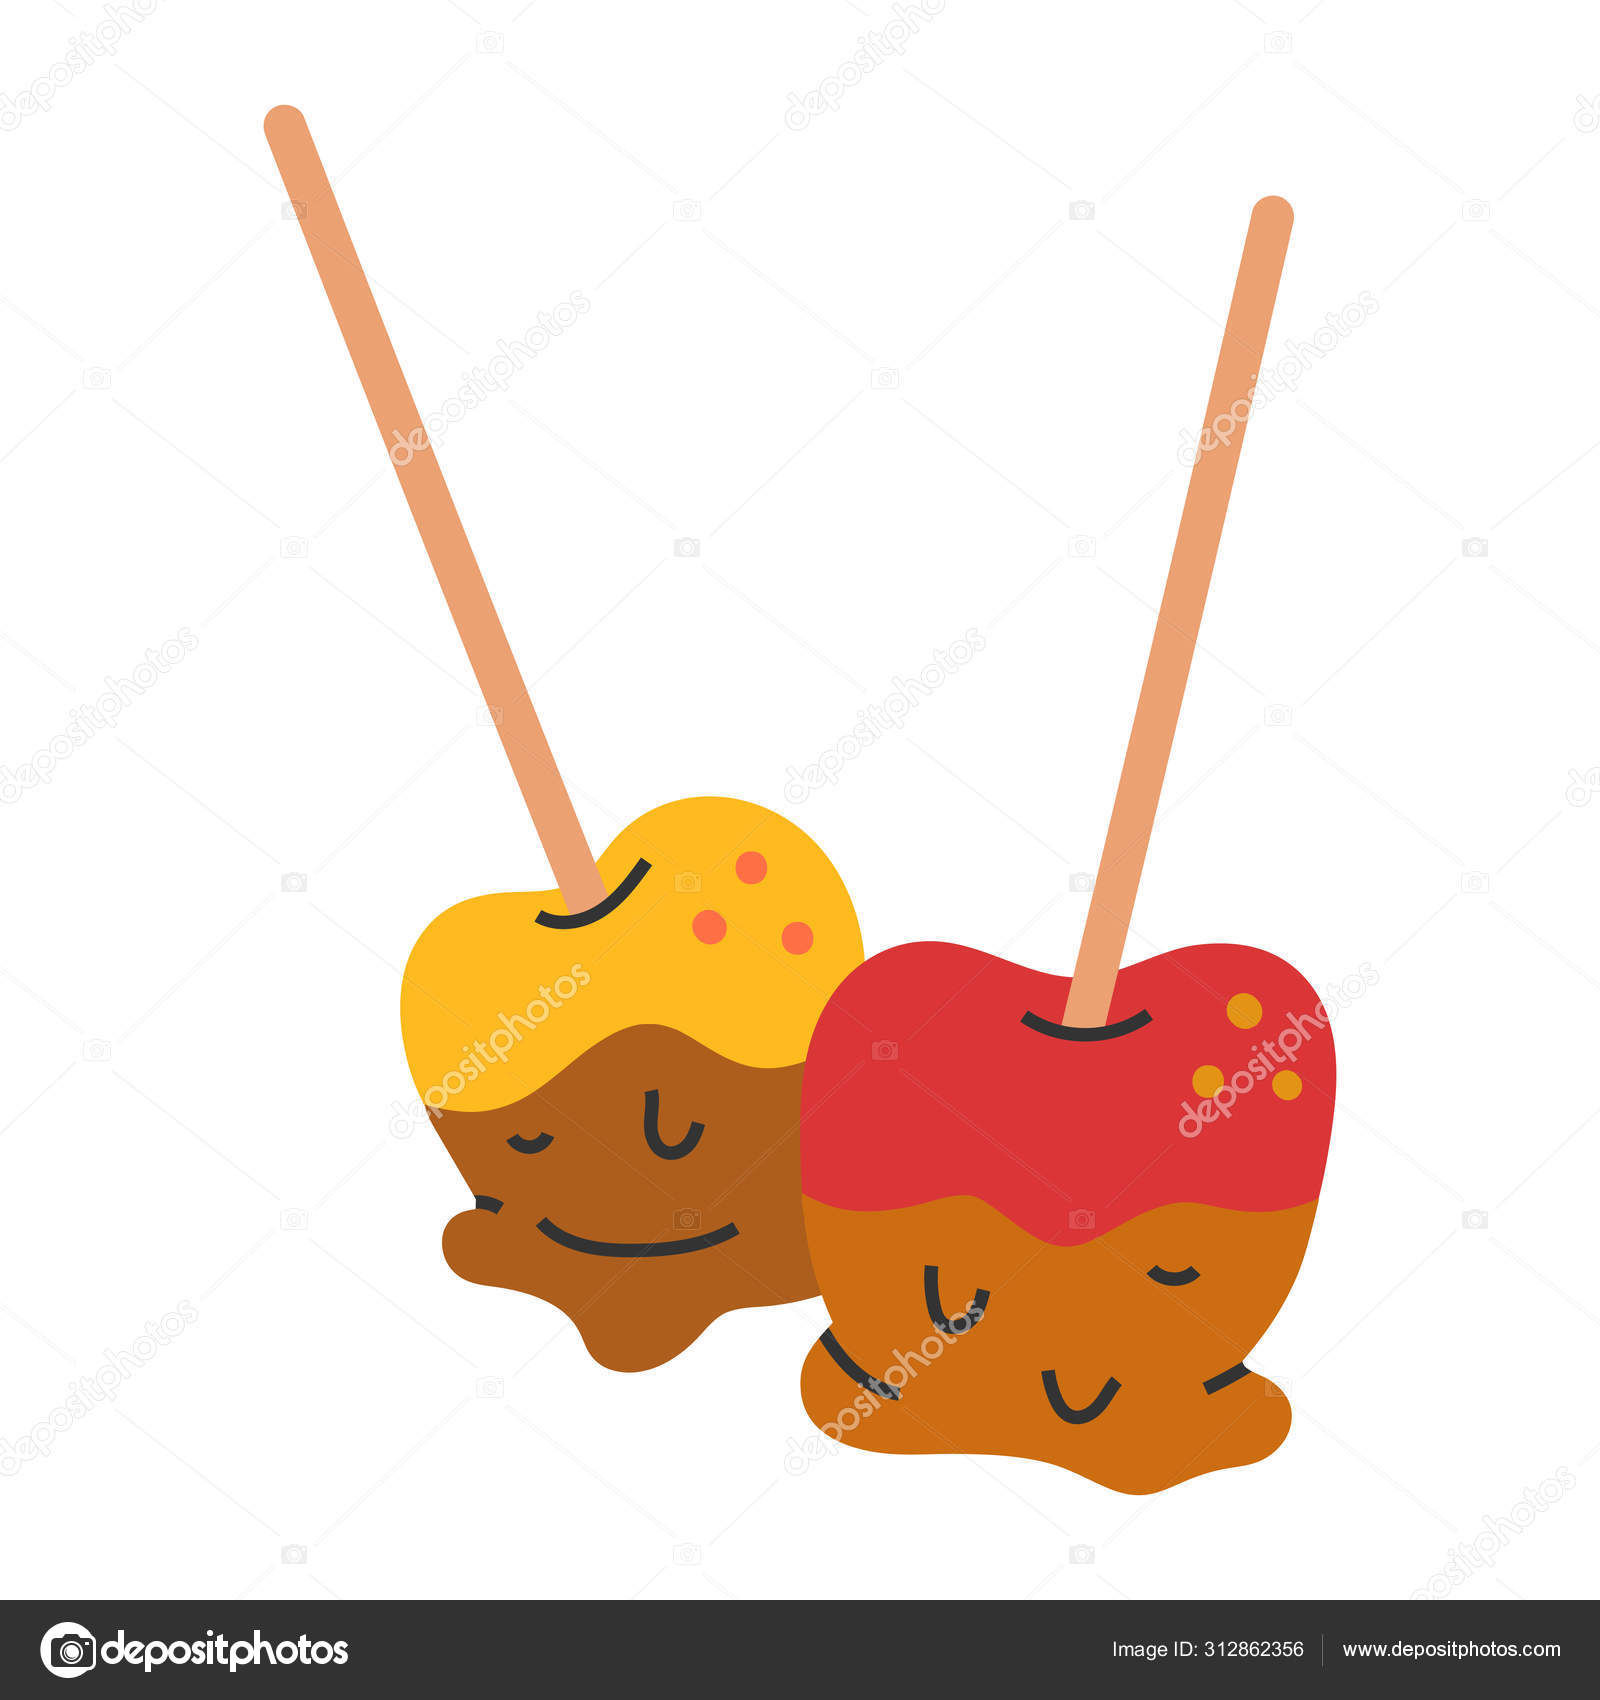 Caramel Apple Sketch Vector Images Royalty Free Caramel Apple Sketch Vectors Depositphotos